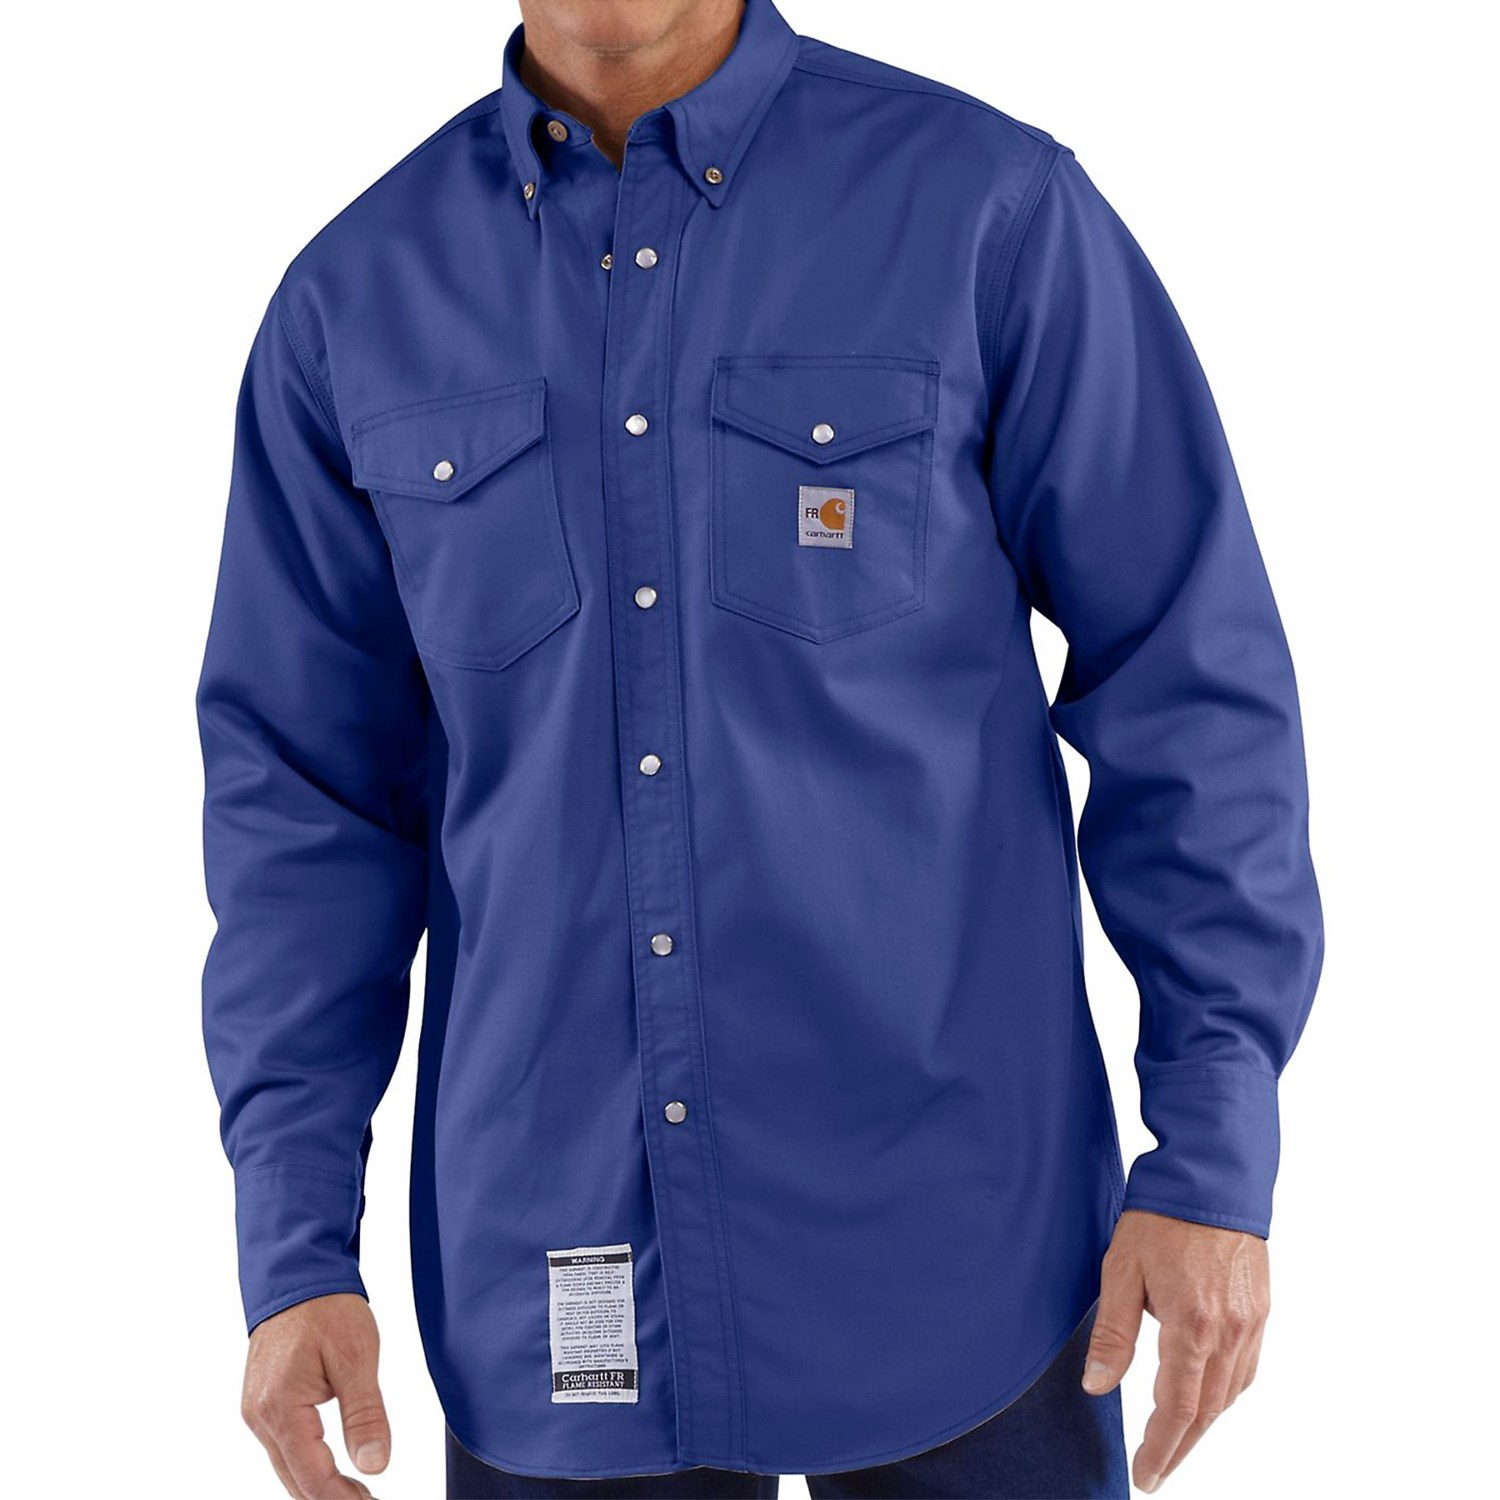 Carhartt flame resistant twill work shirt for men 8728y for Flame resistant work shirts